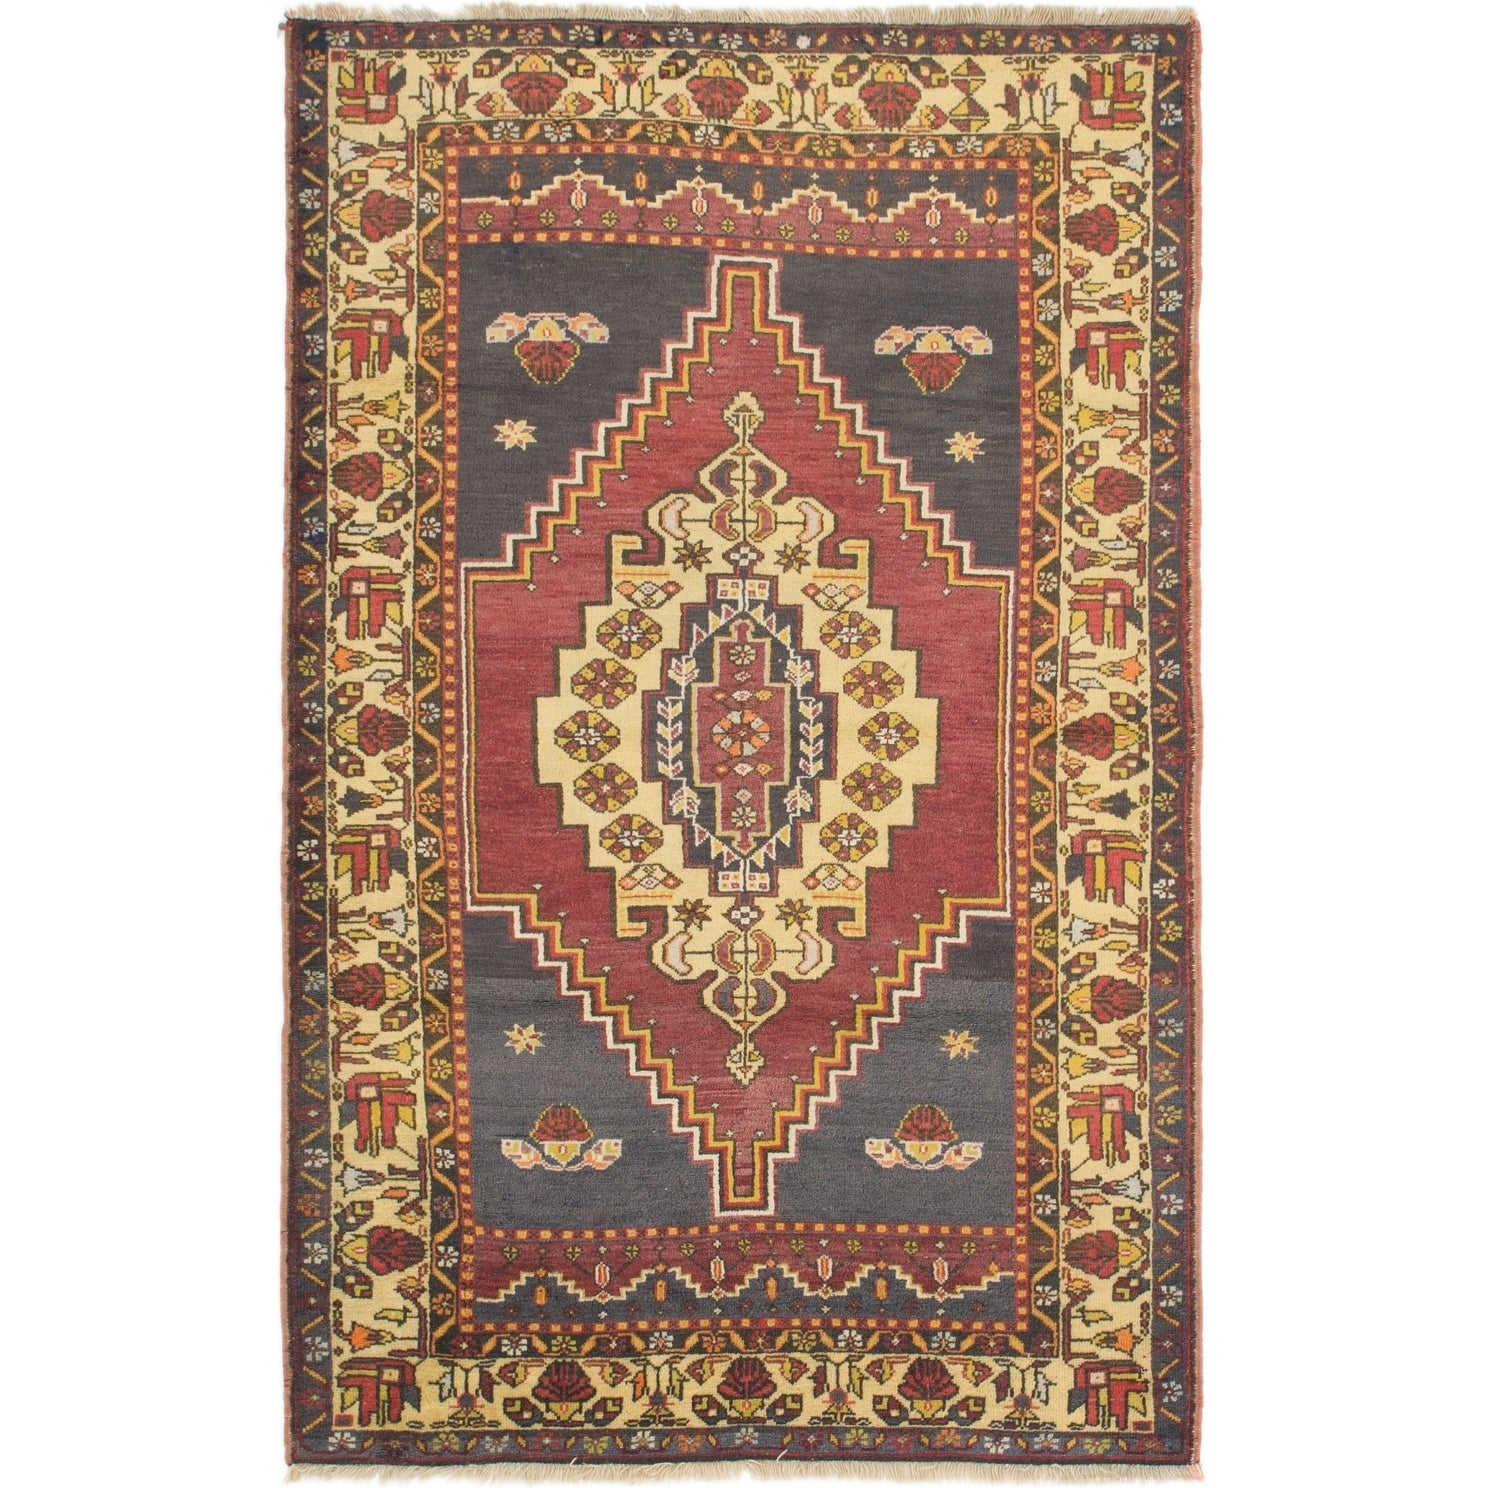 Hand Knotted Kars Antique Wool Area Rug - 4' 4 x 6' 10 (Black - 4' 4 x 6' 10)